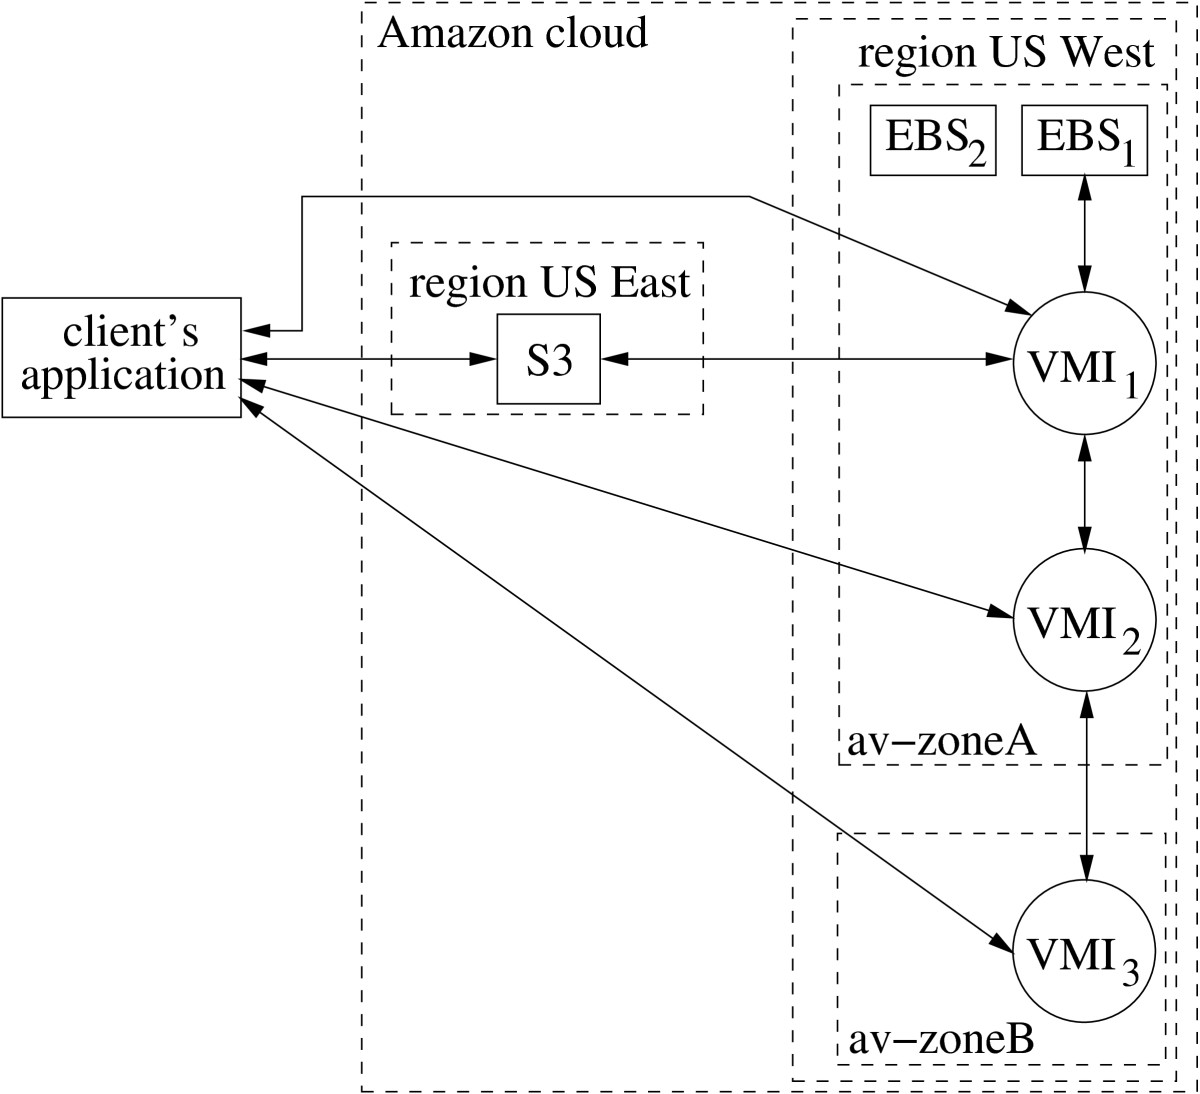 https://static-content.springer.com/image/art%3A10.1186%2F1869-0238-4-8/MediaObjects/13174_2013_Article_7_Fig11_HTML.jpg